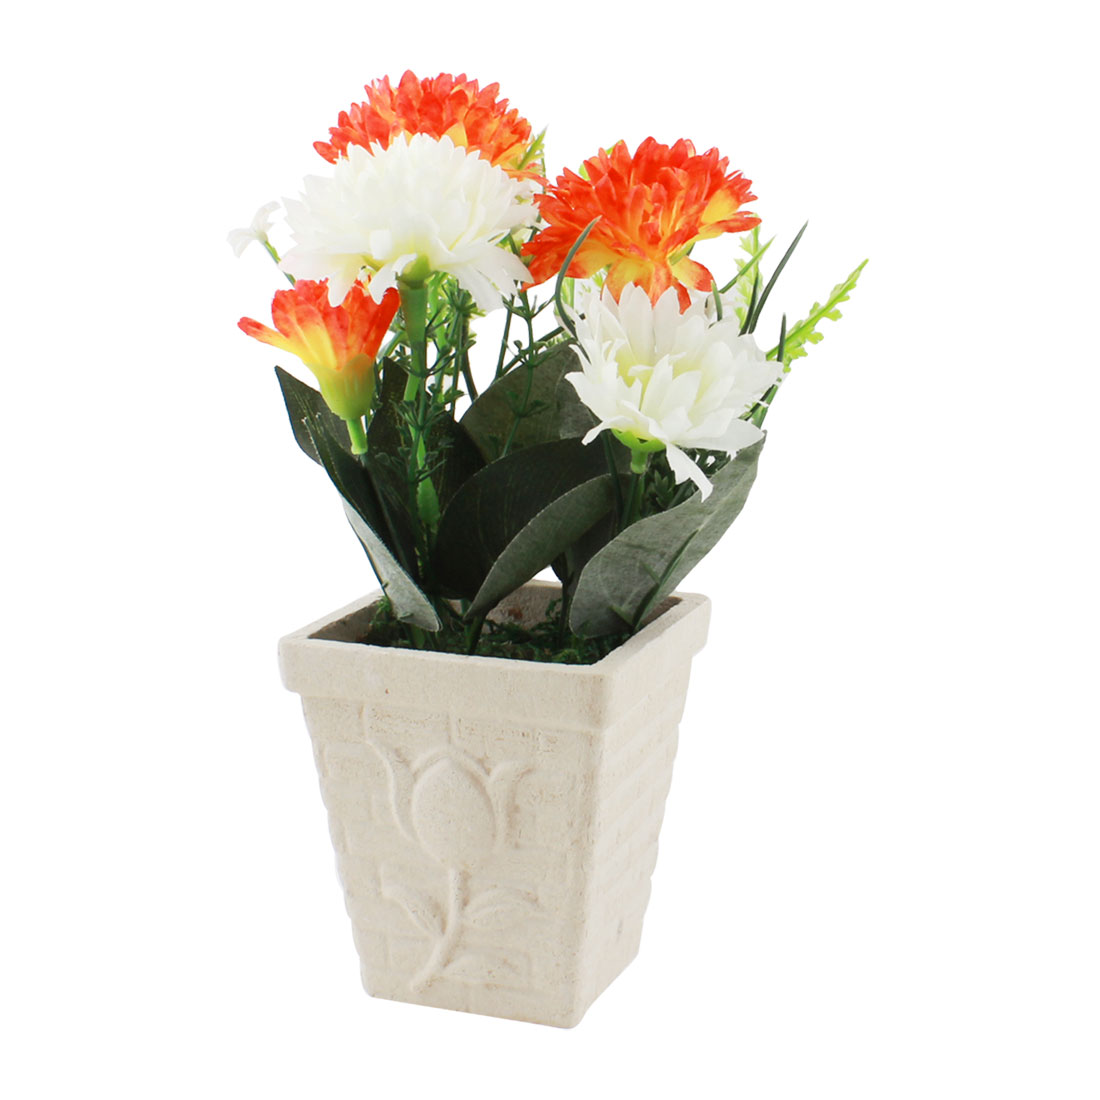 Artificial Table Decor Landscaping Orange Red White Plastic Flowers Flowerpot